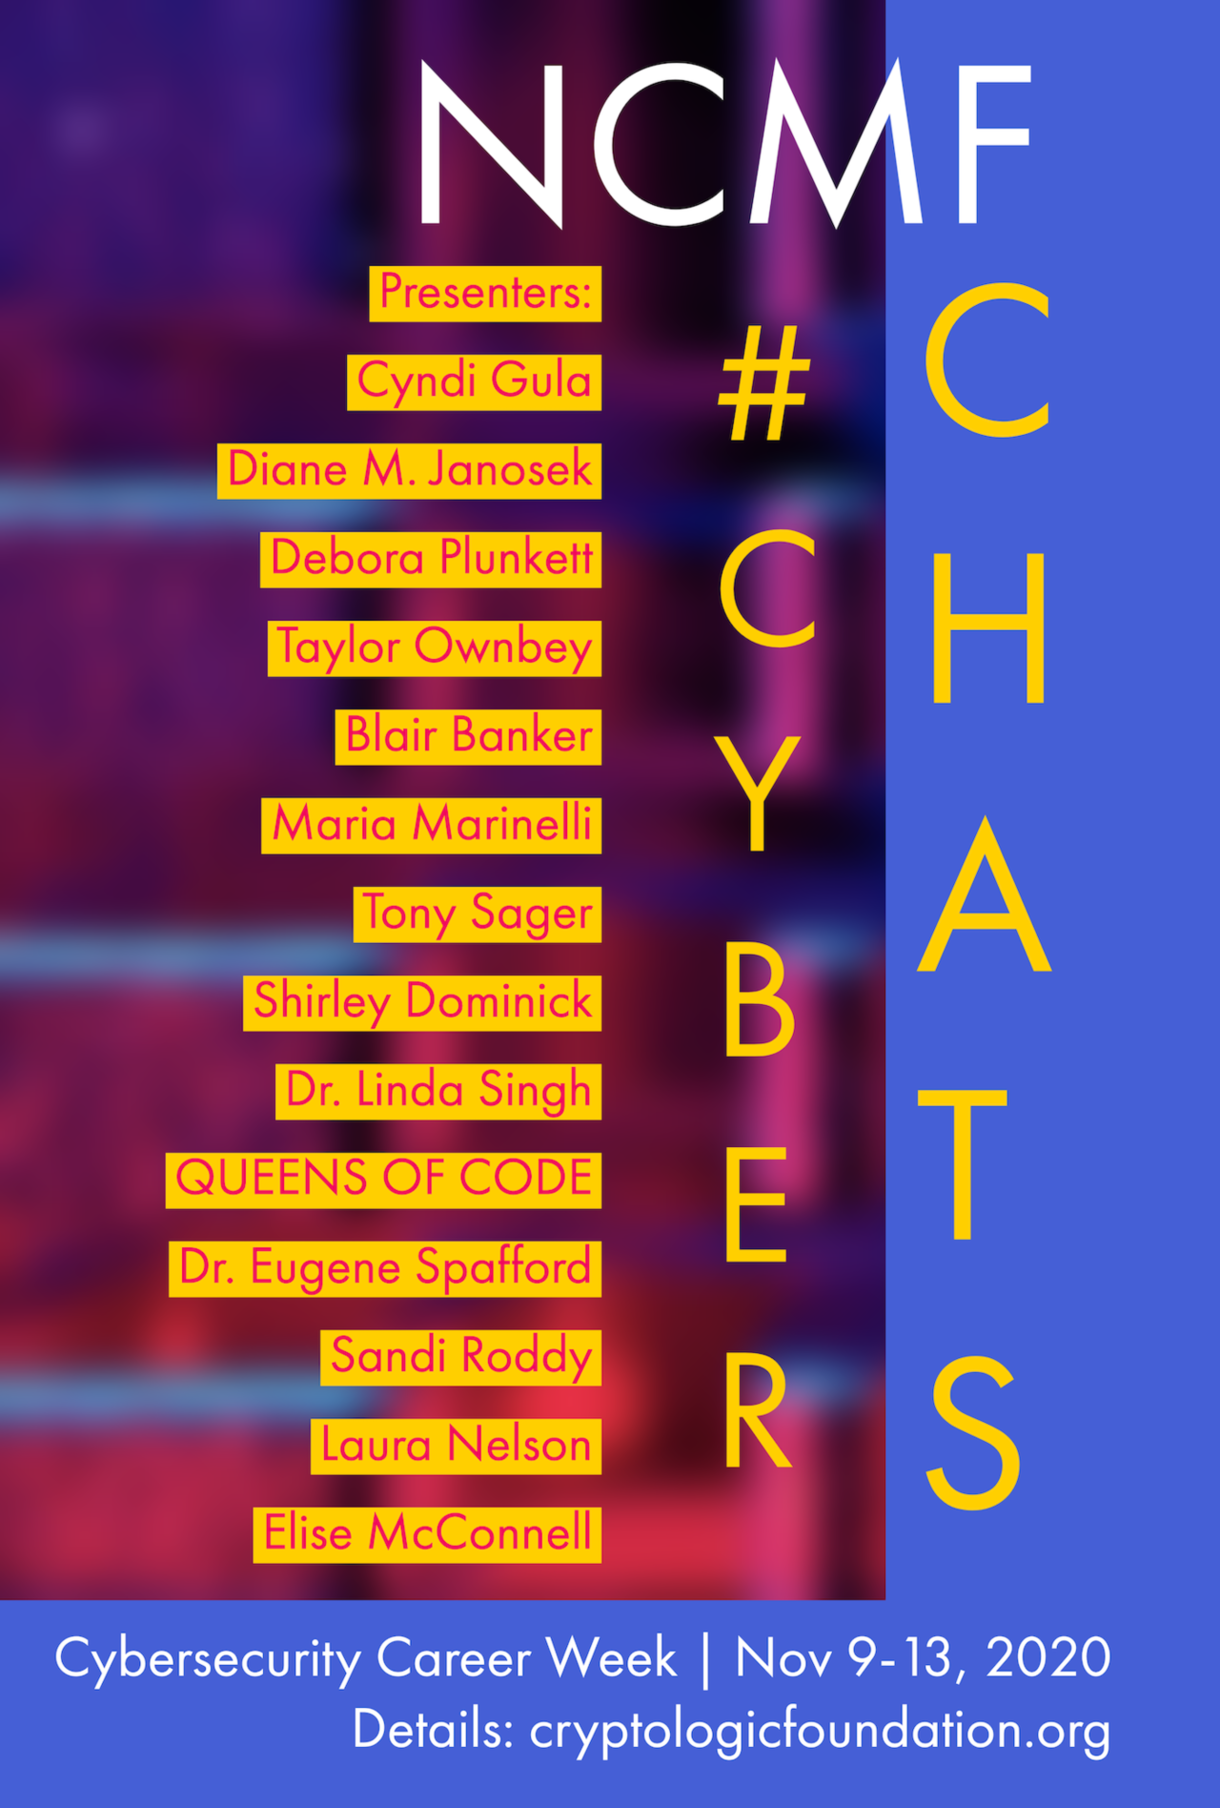 Check out our schedule of cyber experts for the Nov 9-13 Cyber Career Chats.